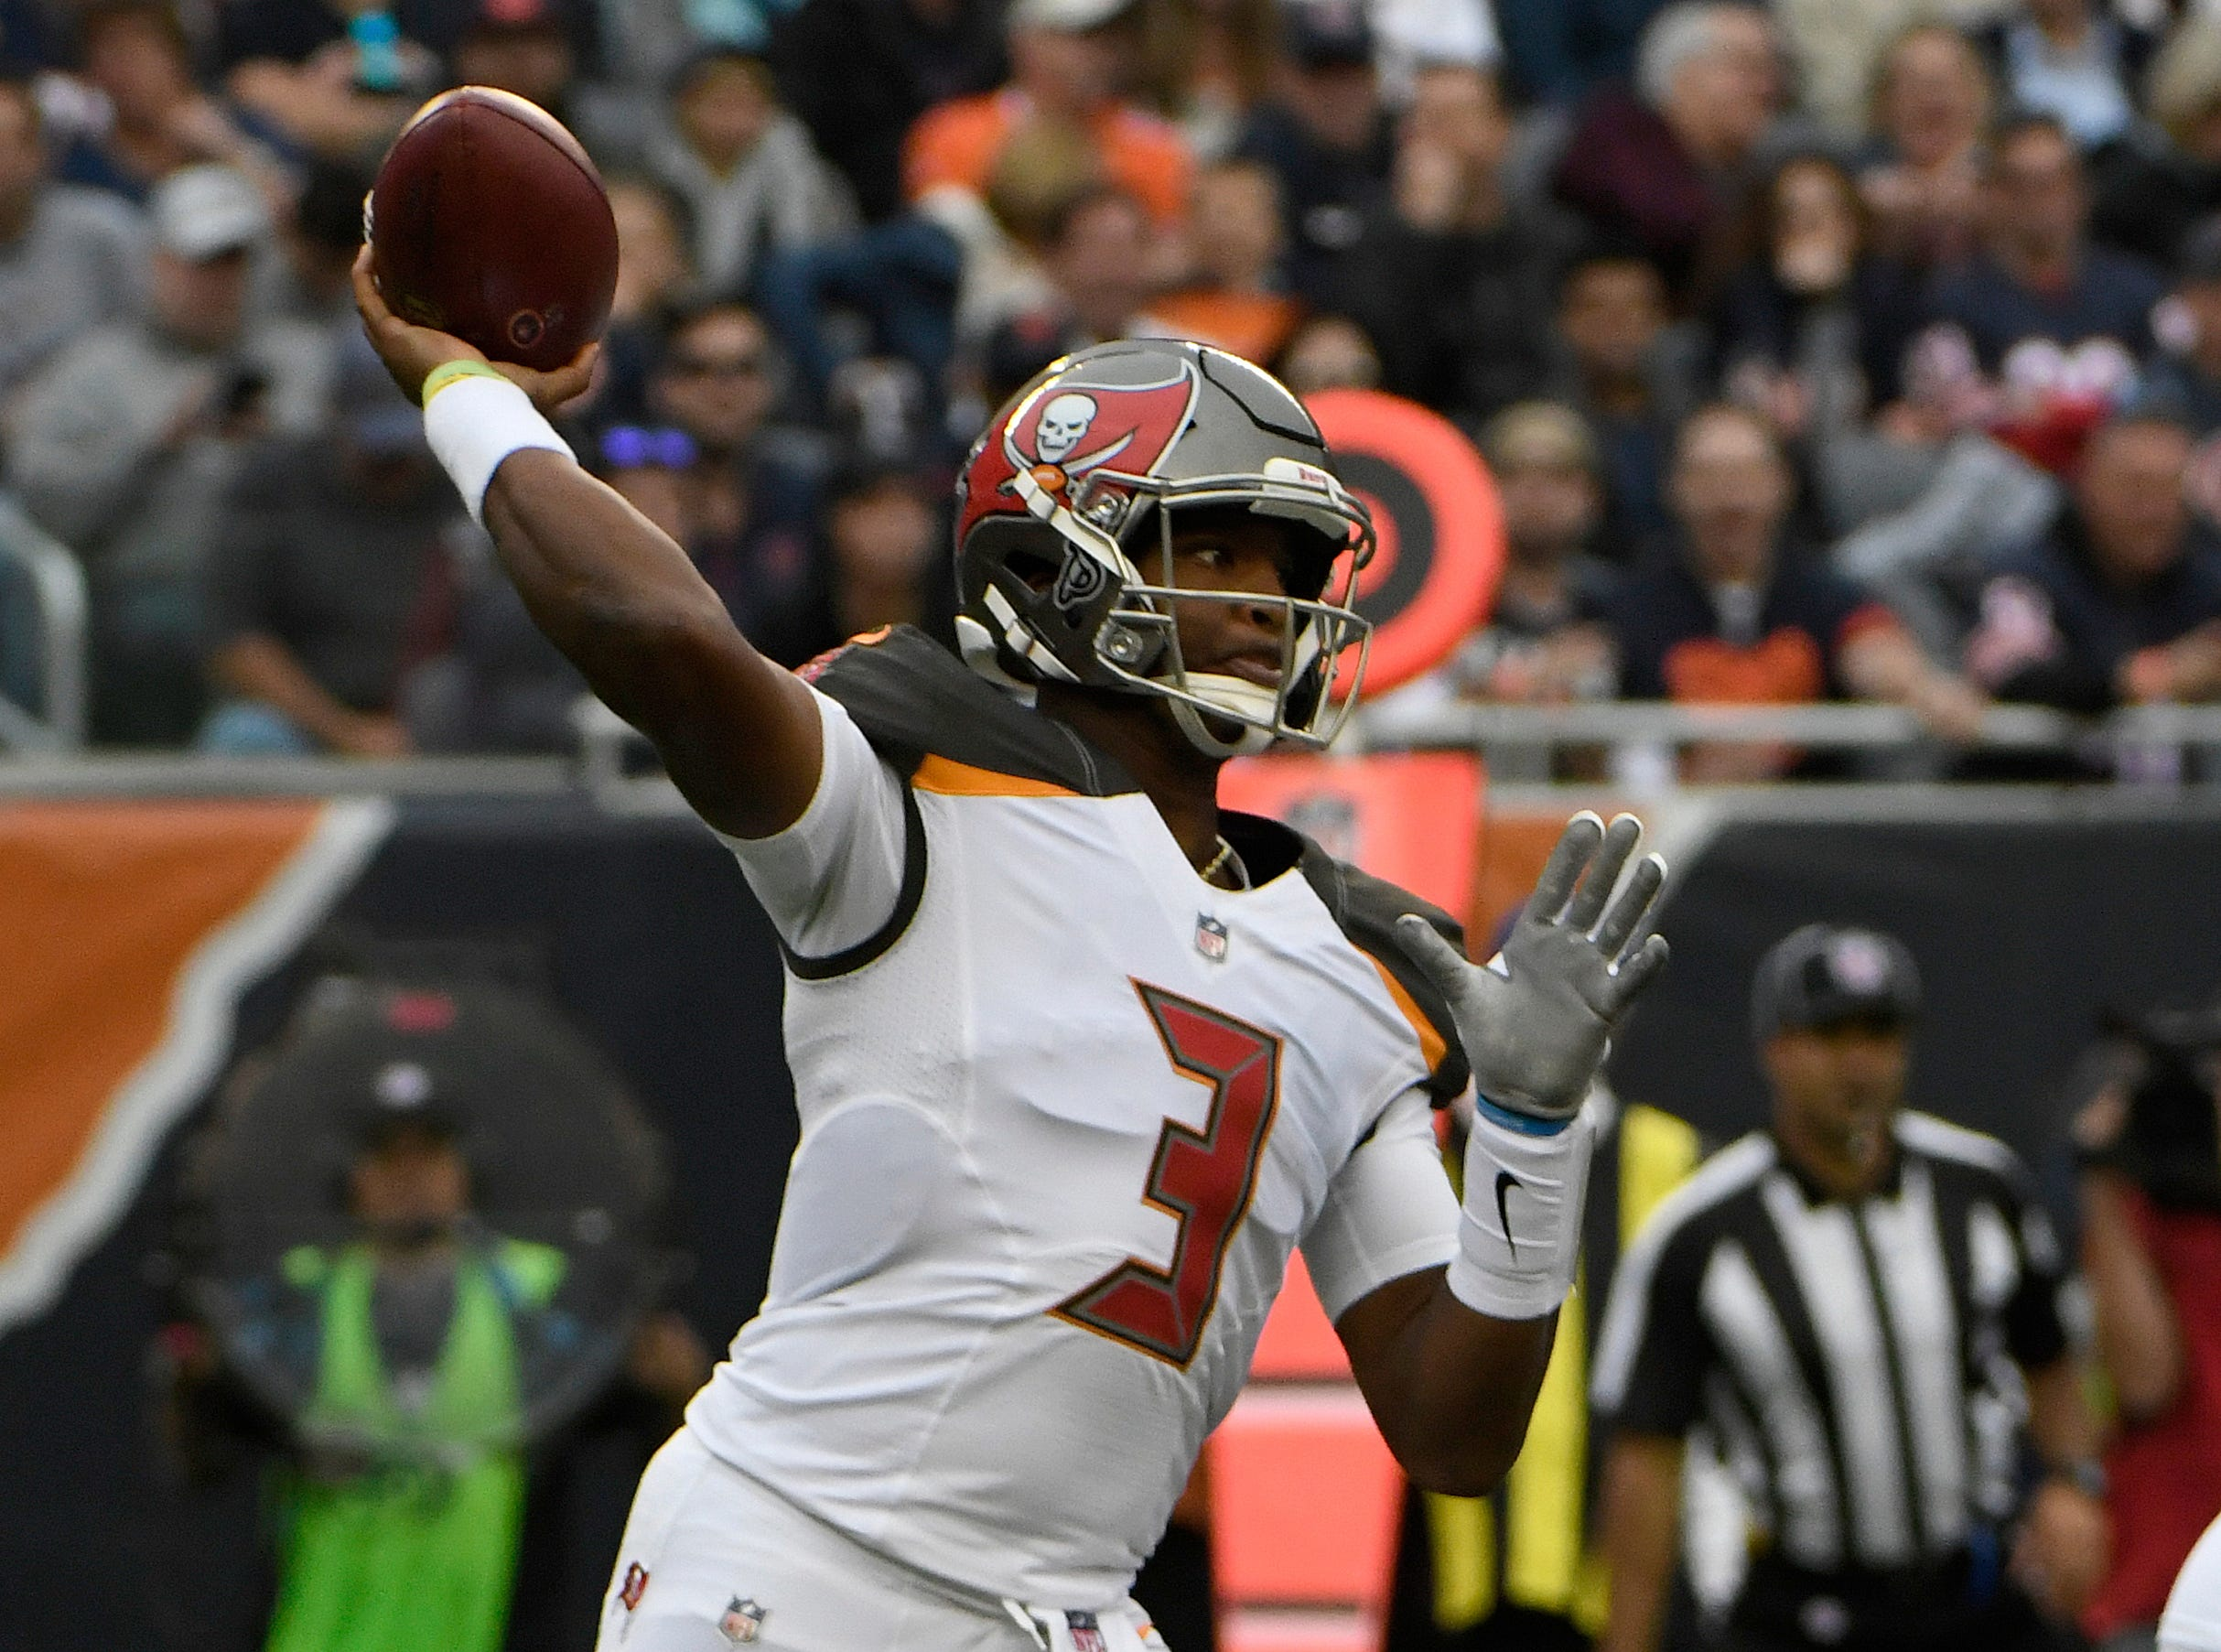 The Latest: Winston replaces Fitzpatrick at QB for Bucs